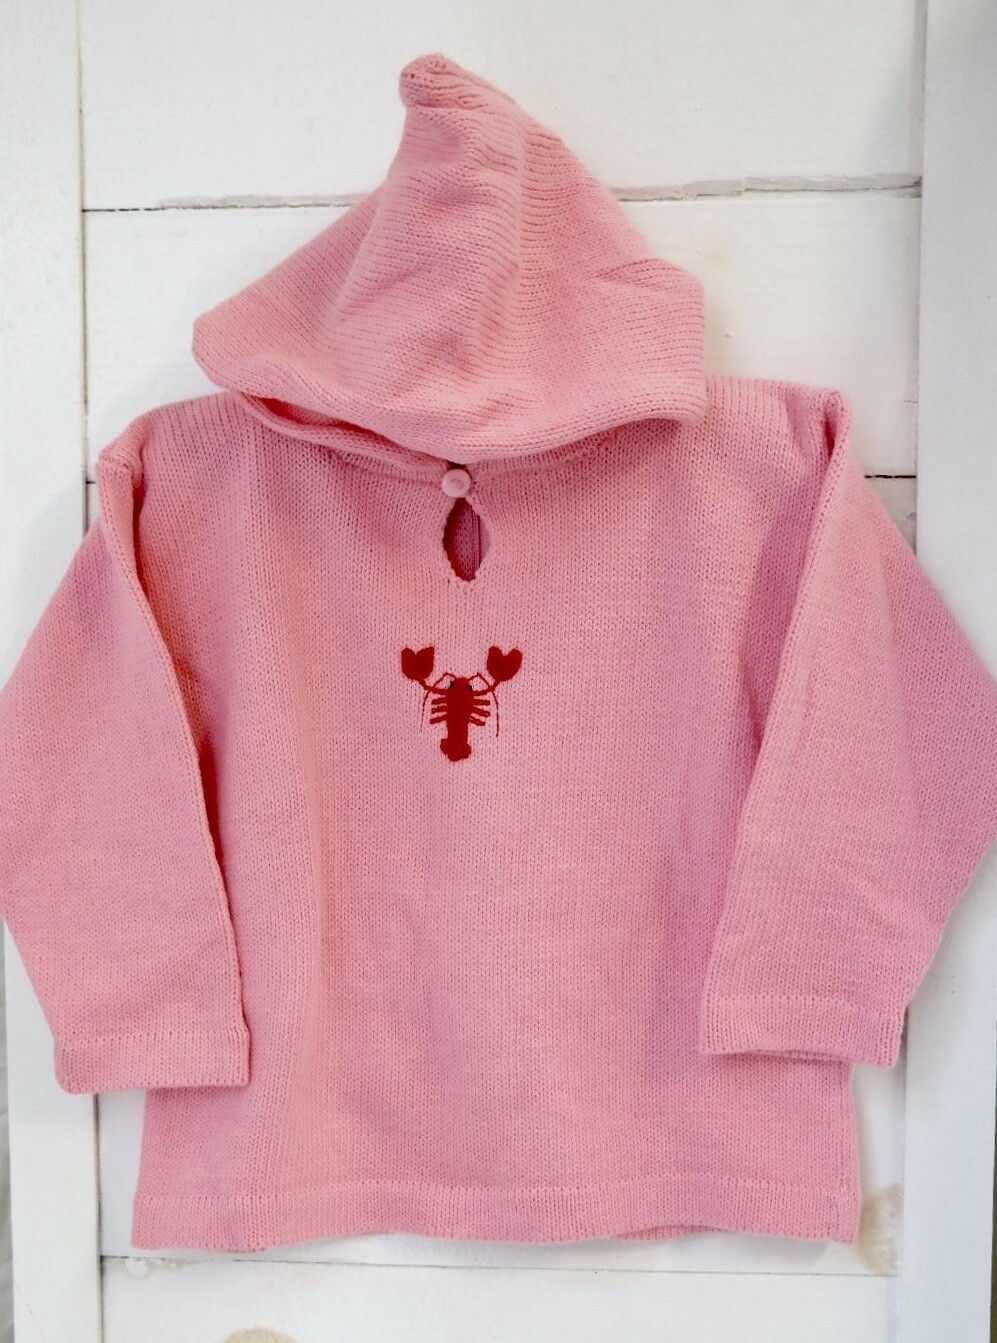 Claver Zip up hooded sweater - 12 mos pink cotton